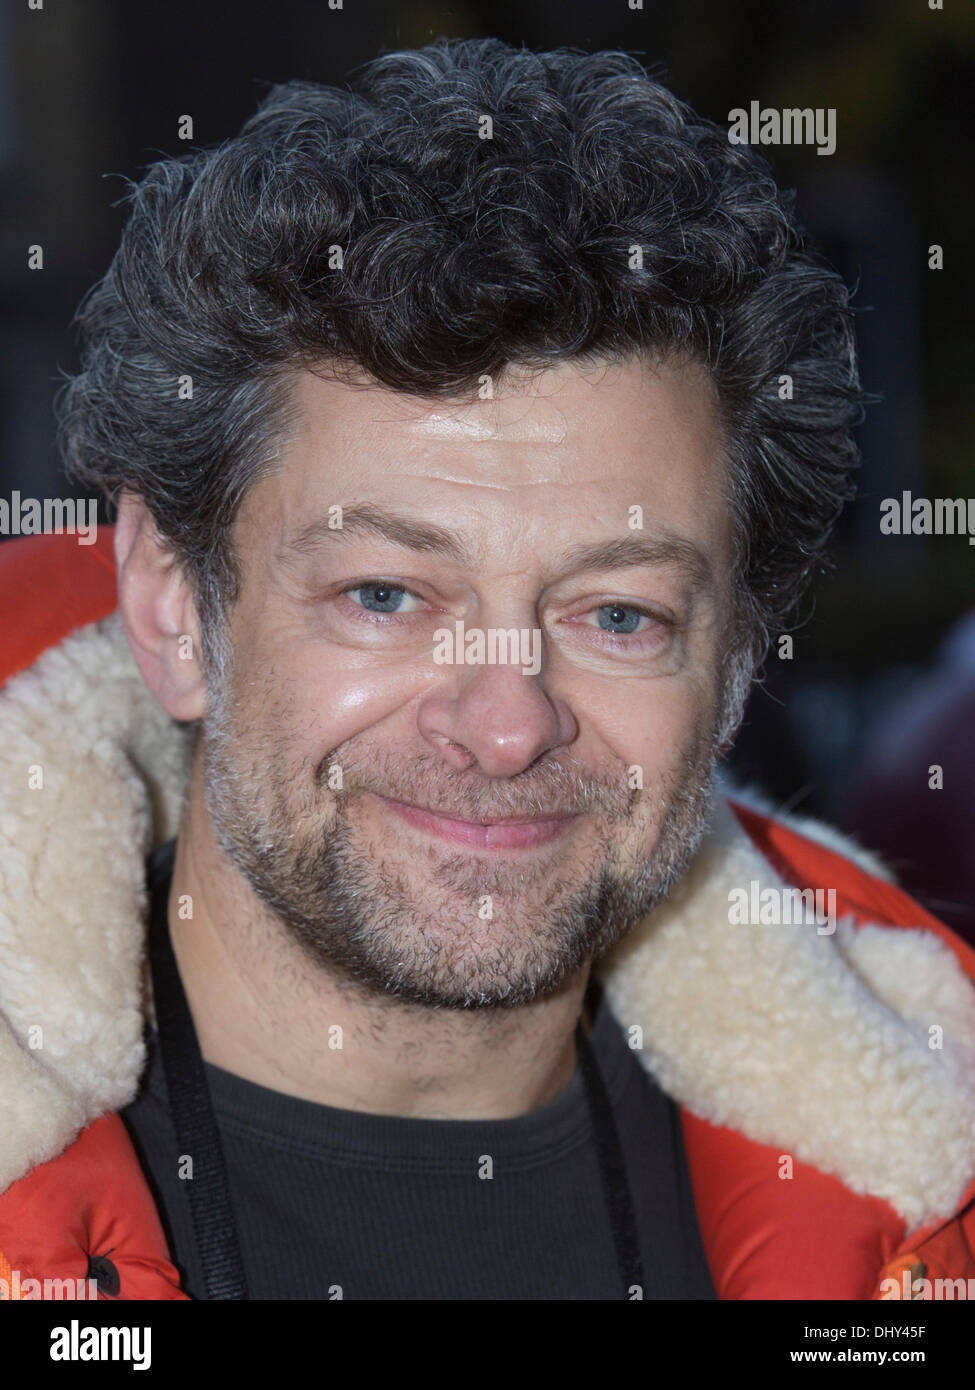 London, UK. 16 November 2013. Picture: Also spotted at the fair: Actor Andy Serkis. Actors Damian Lewis and Helen - Stock Image